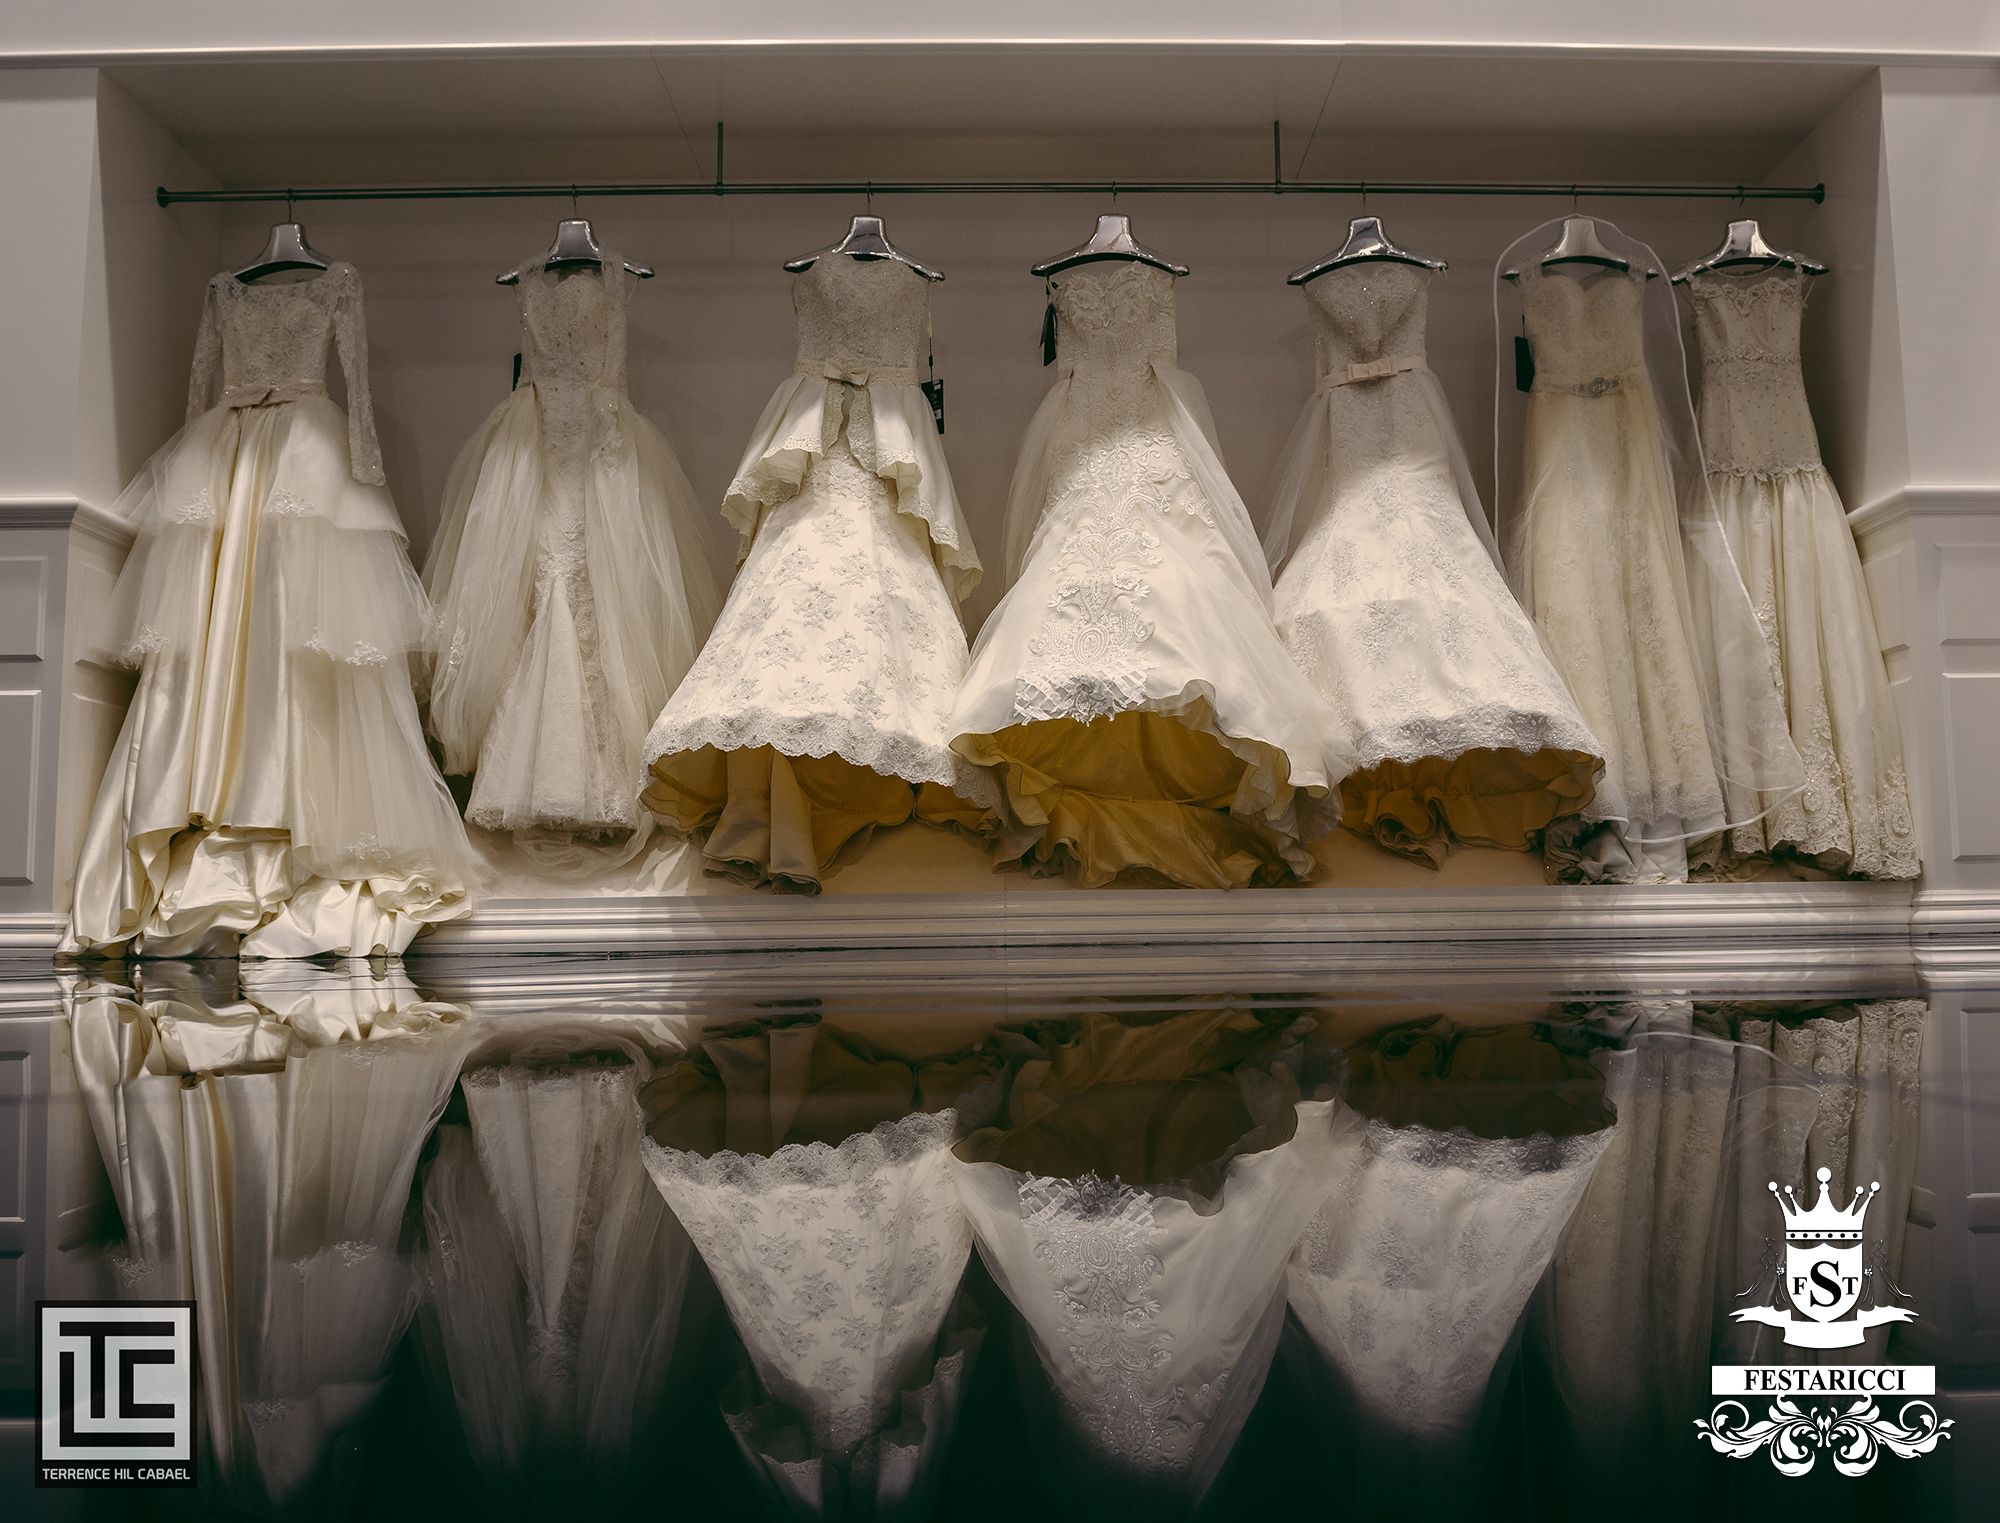 All You Need Is A Wedding Dress From Festaticci Visit Us In Level 1